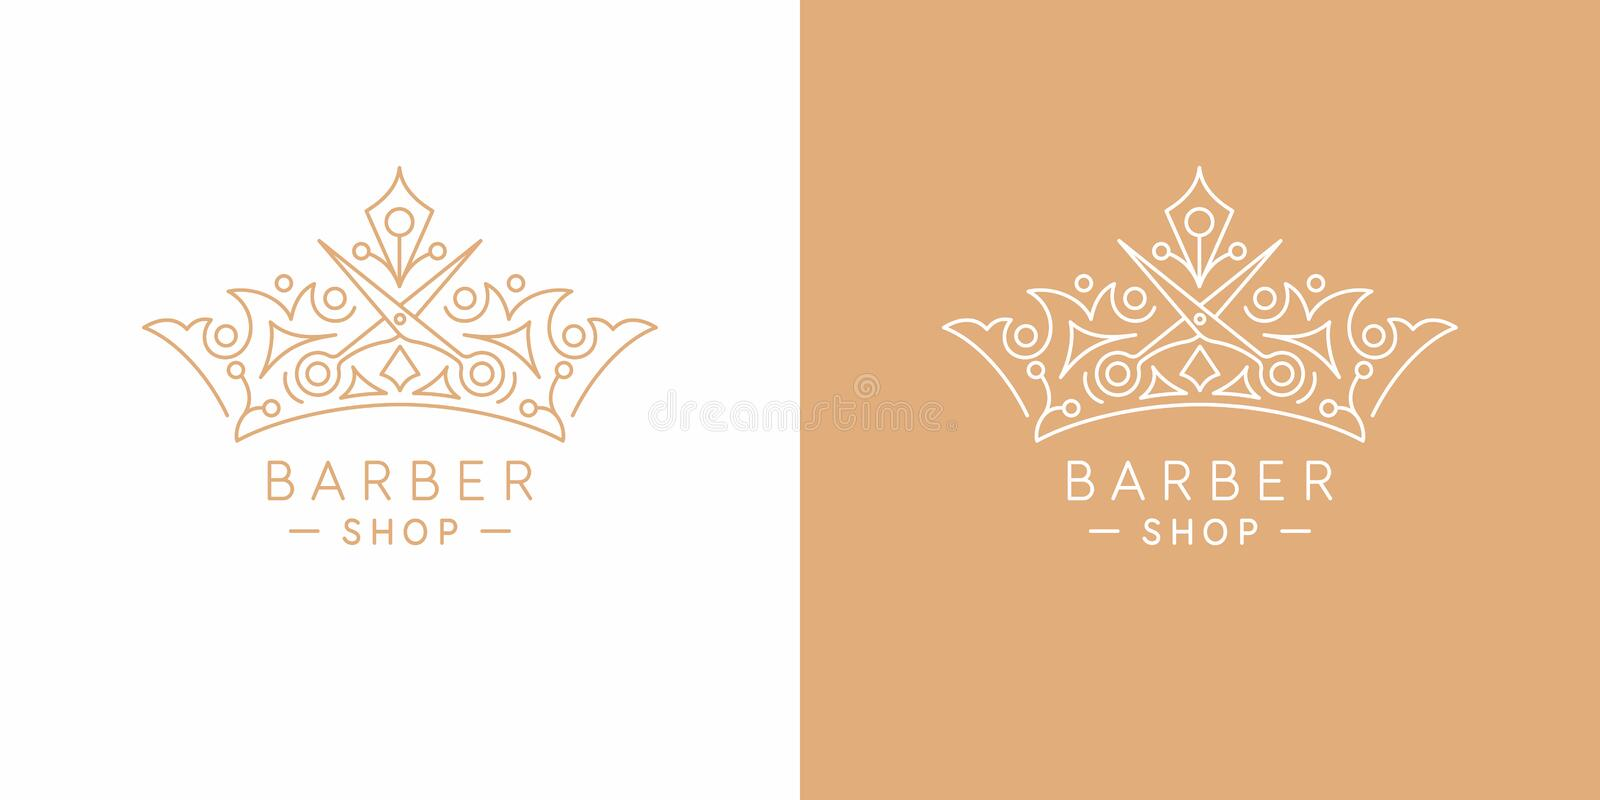 The original linear image of the crown. Illustration in simple flat style. Sign for barber shop. royalty free illustration